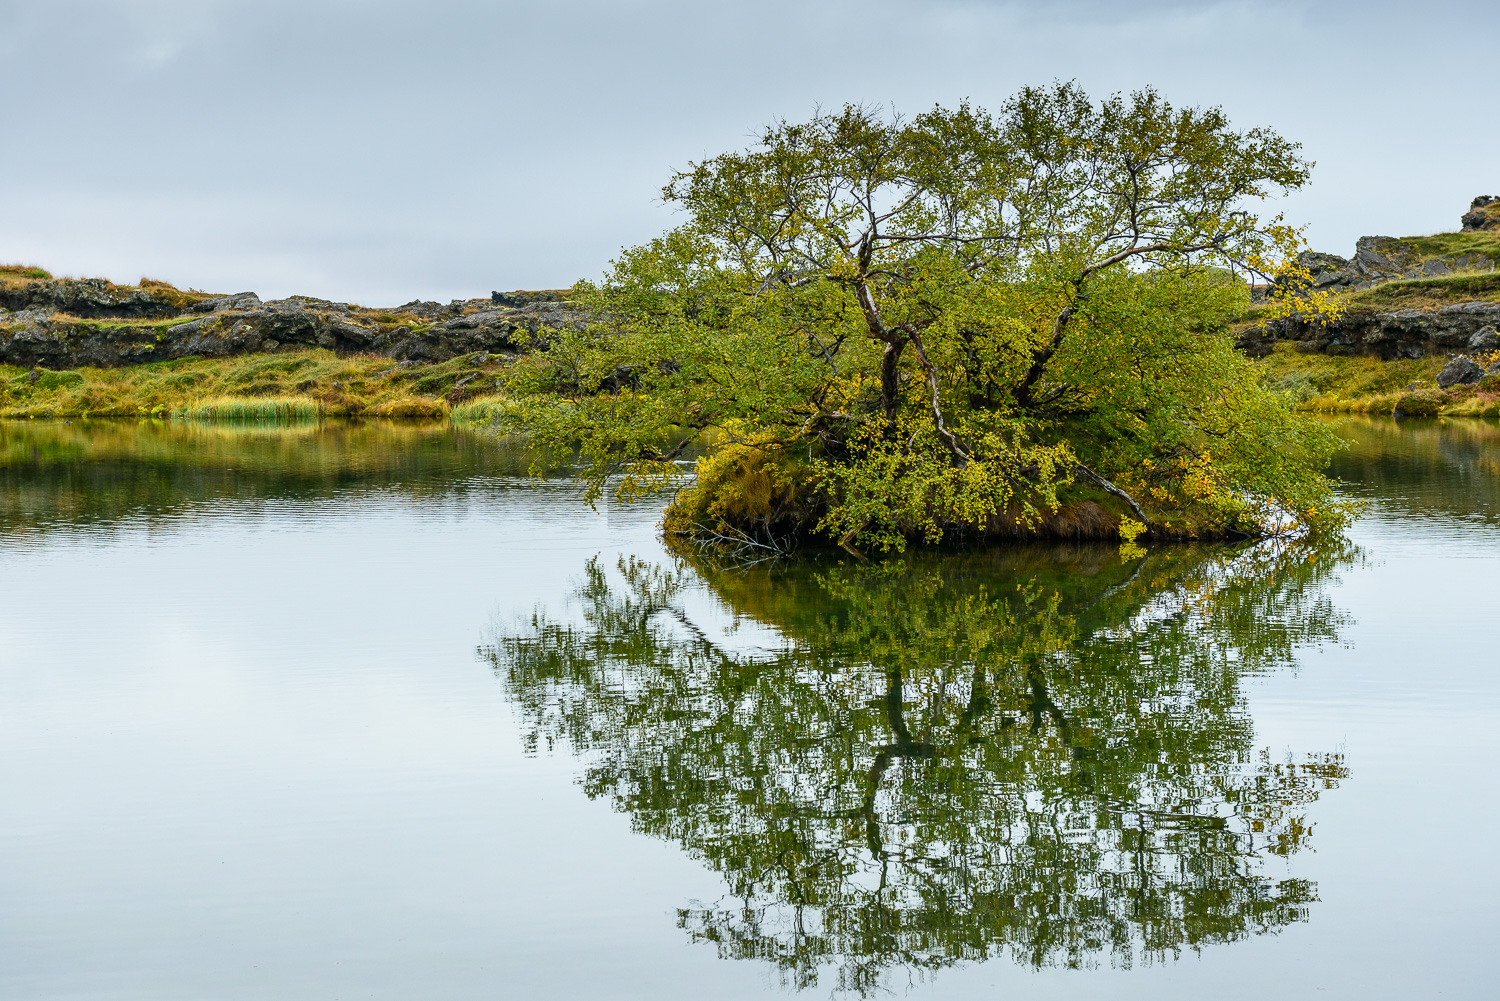 Reflection, Lake Myvatn, Iceland